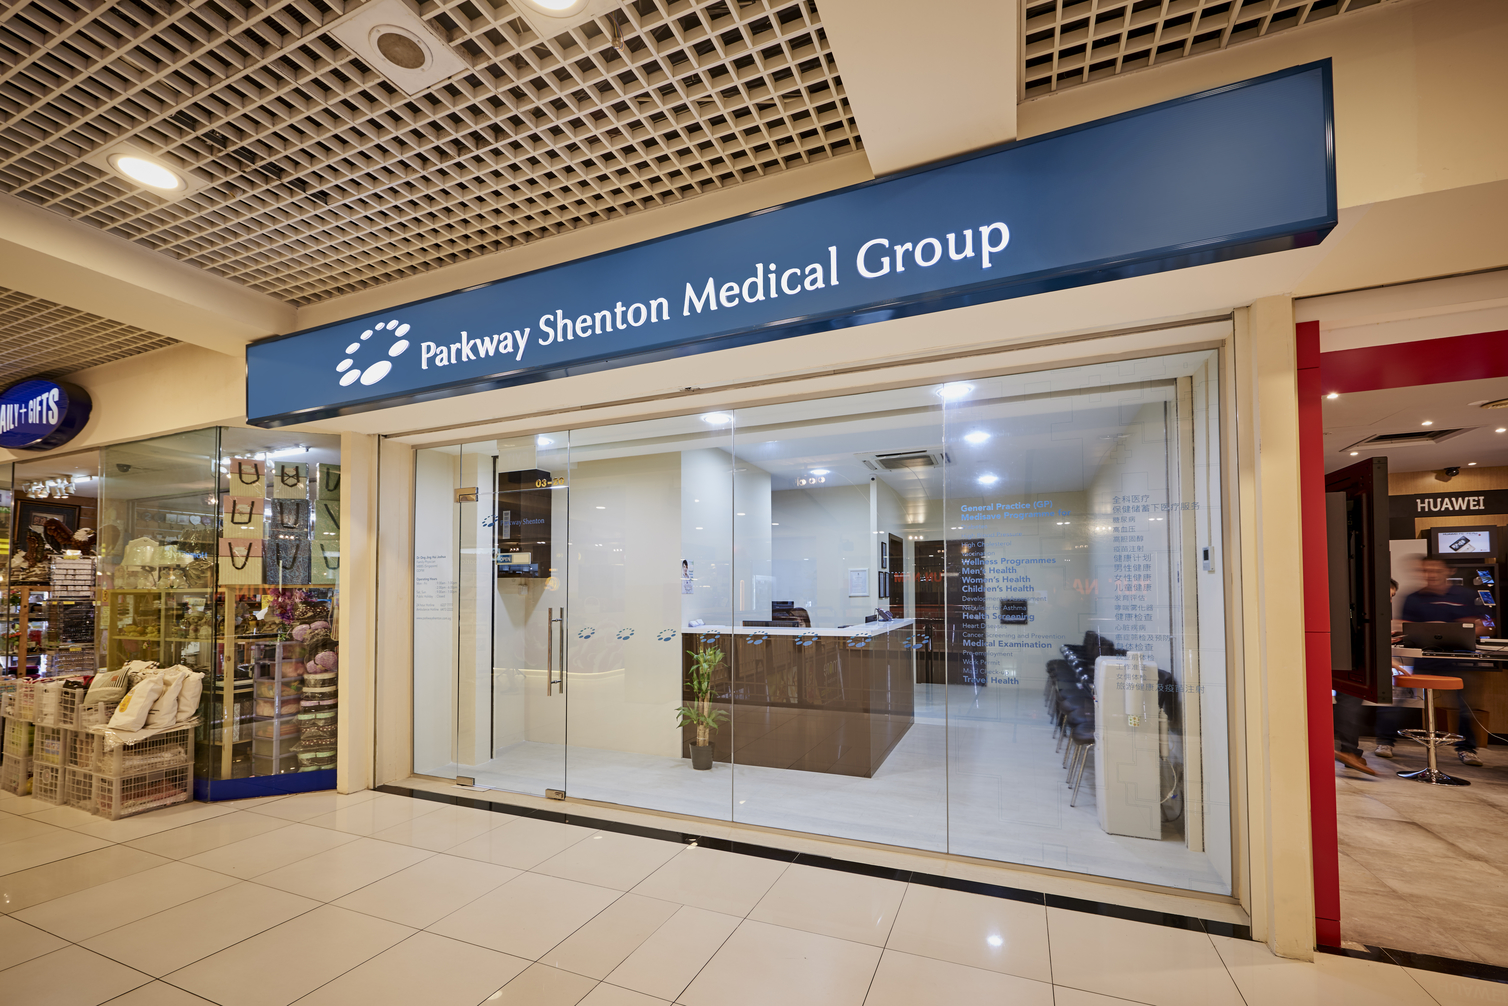 Kovan Heartland Mall - Shenton Medical Group